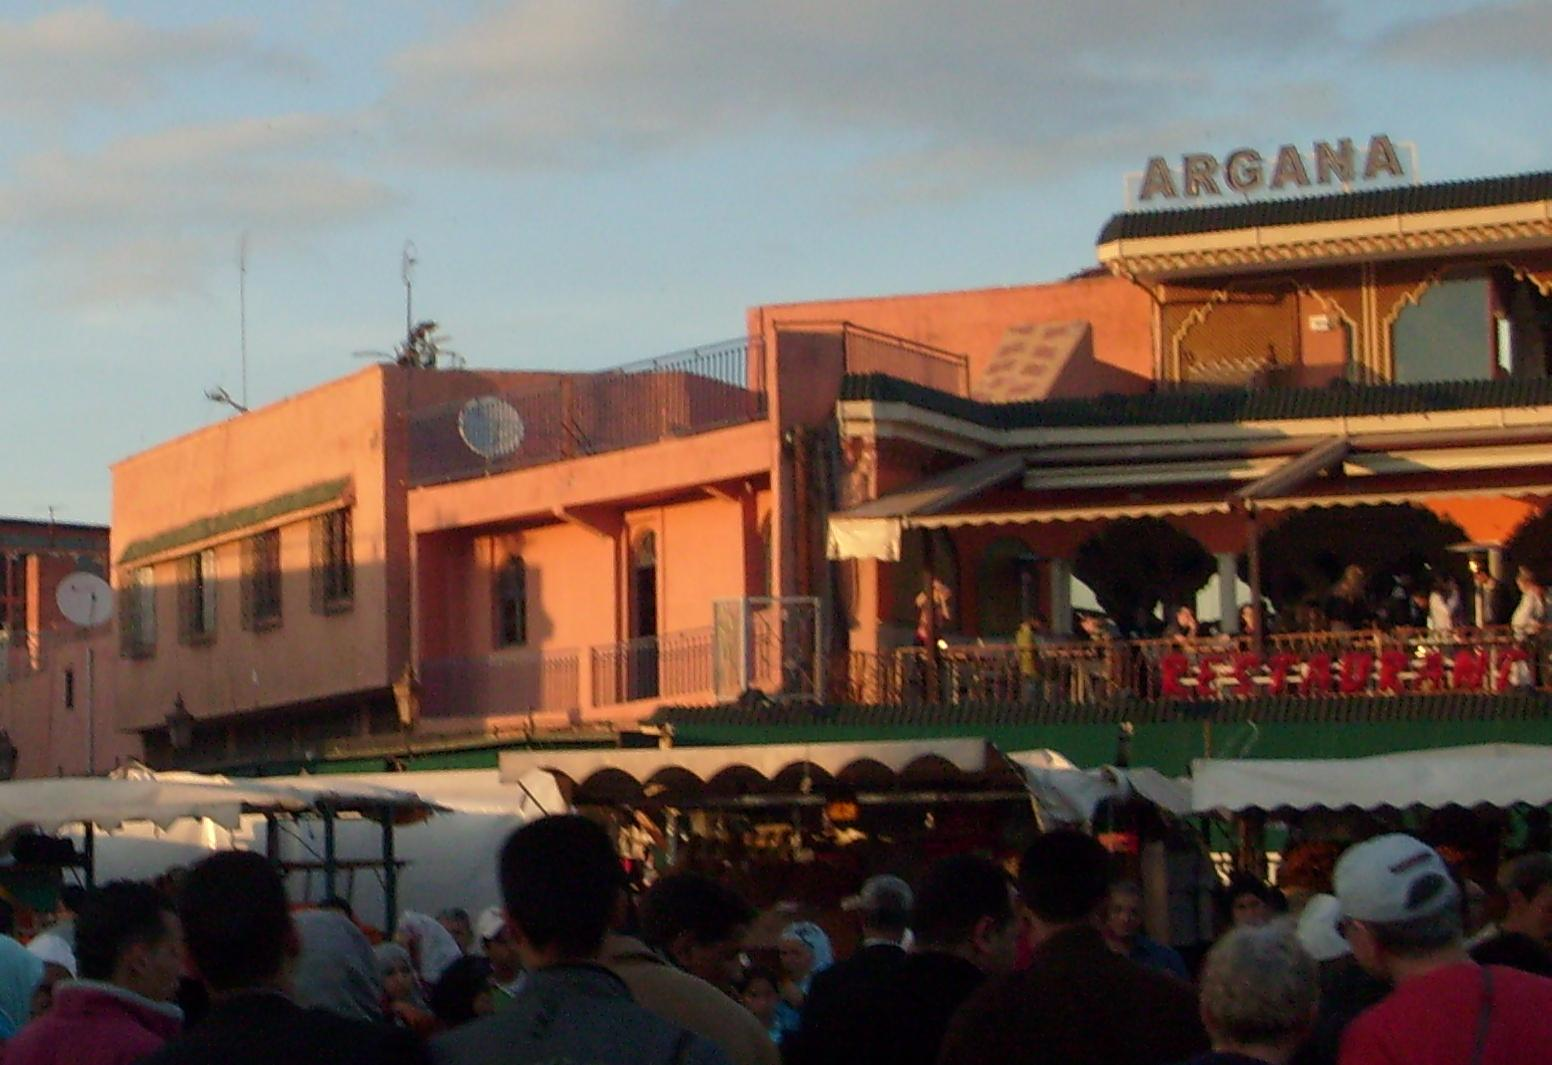 Marrakech square check out marrakech square cntravel for Argana moroccan cuisine